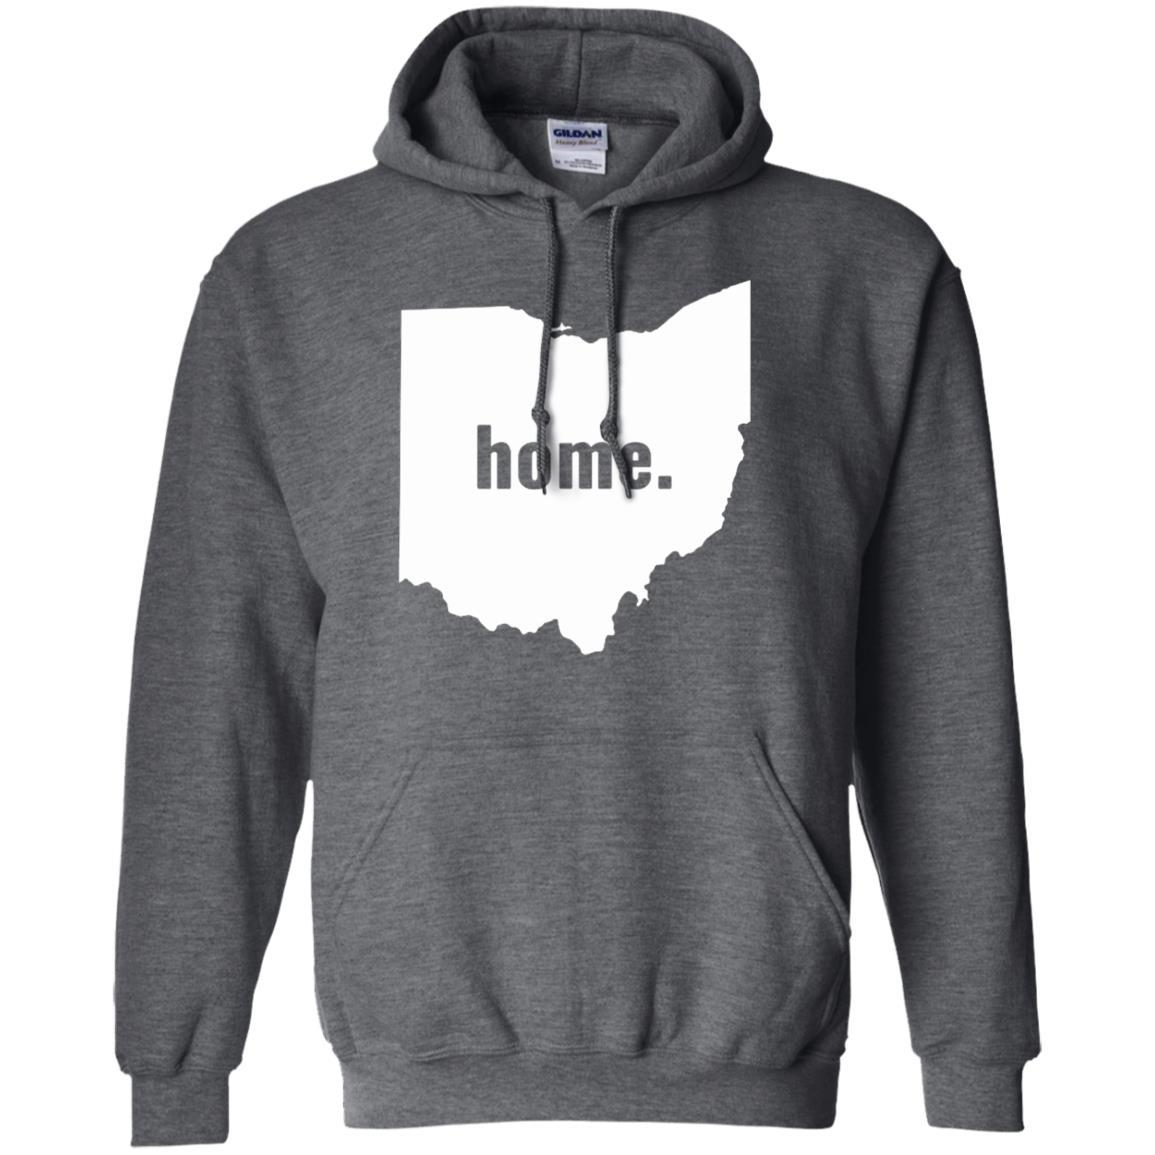 The Official Ohio Home State Pride T-Shirt